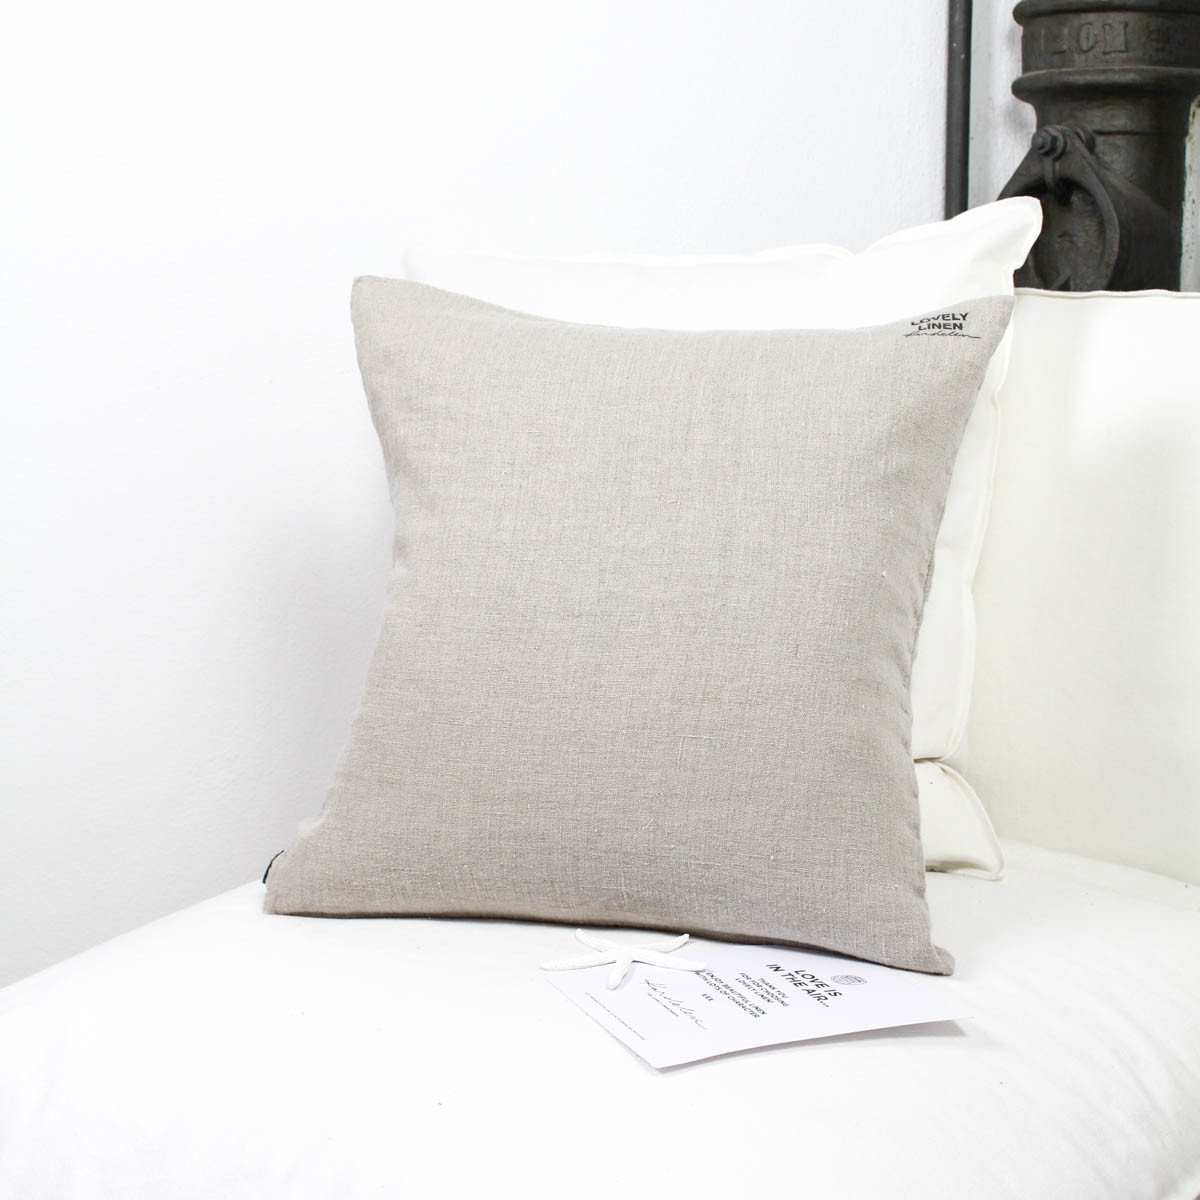 Lovely Linen Dekokissen Leinen Natural Beige - LAZY SUNDAY LAZY SUNDAY